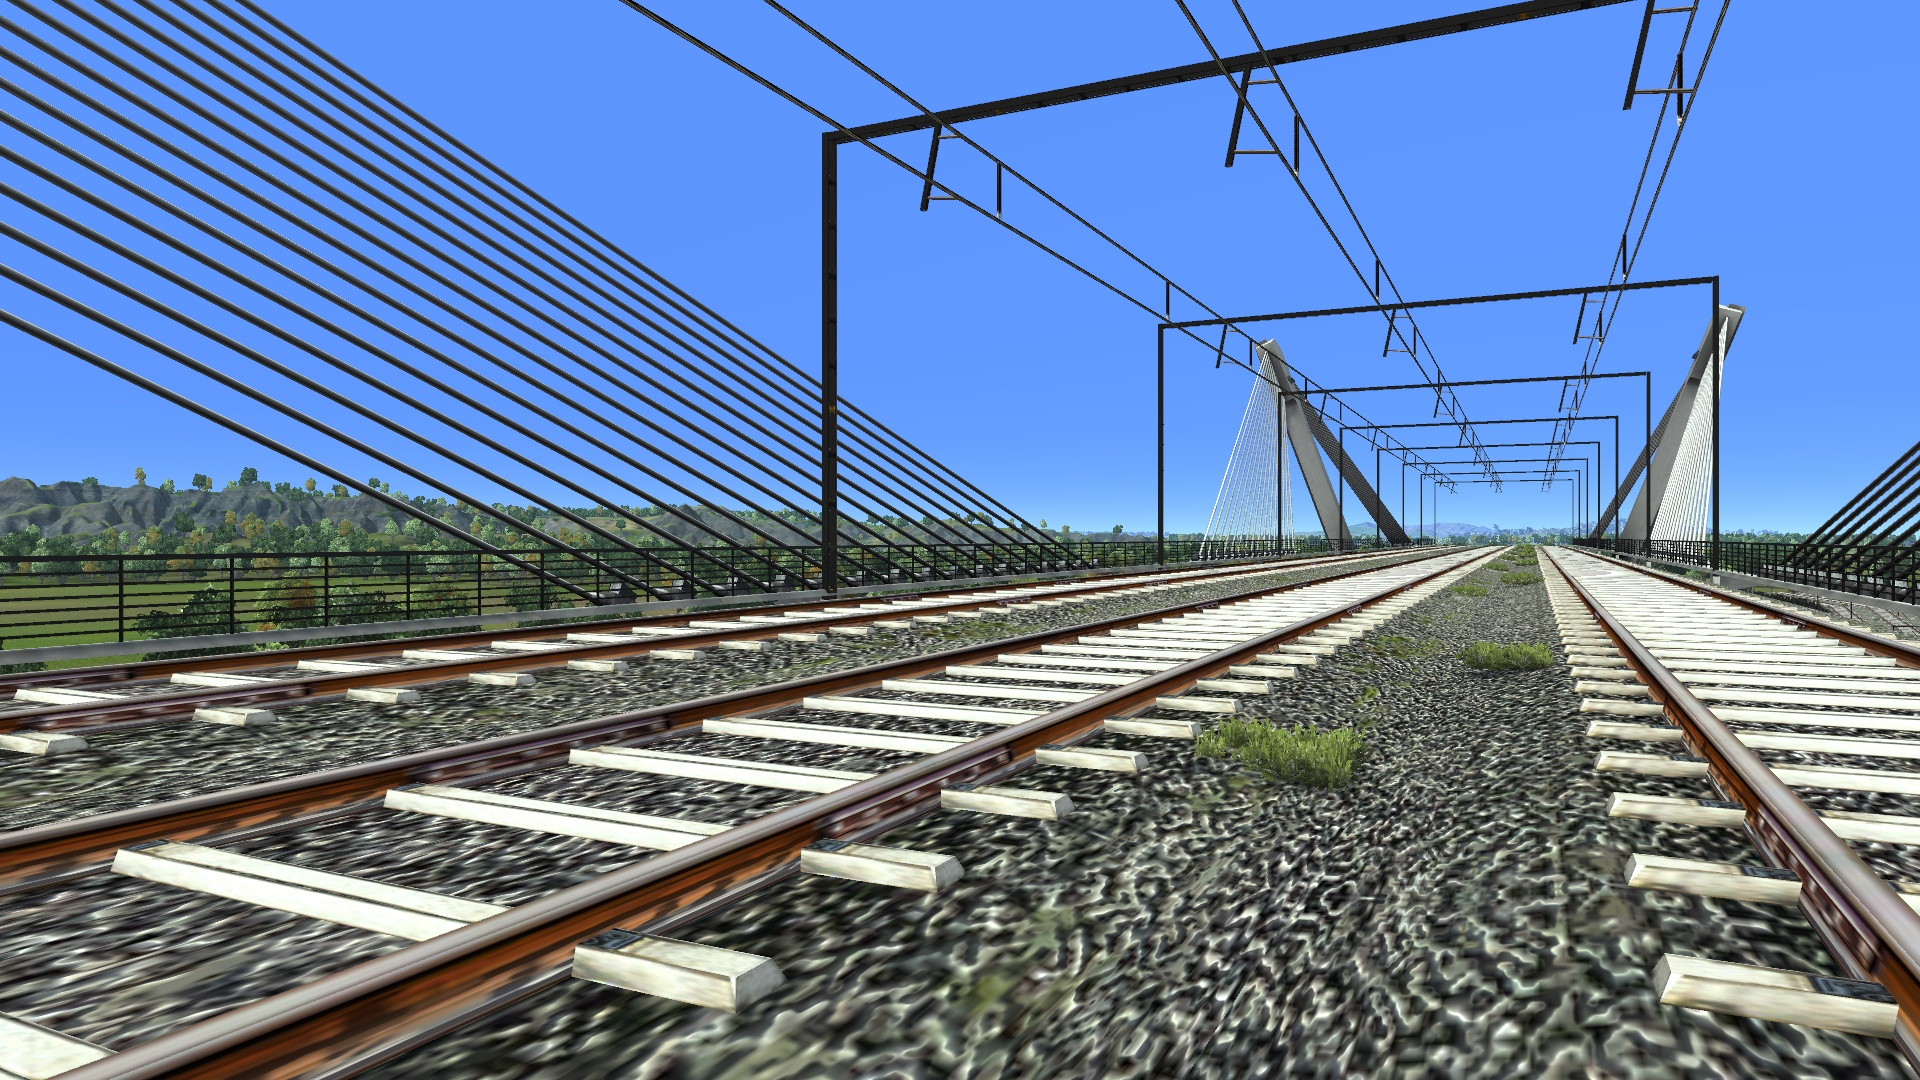 cxl_screenshot_train_94.jpg